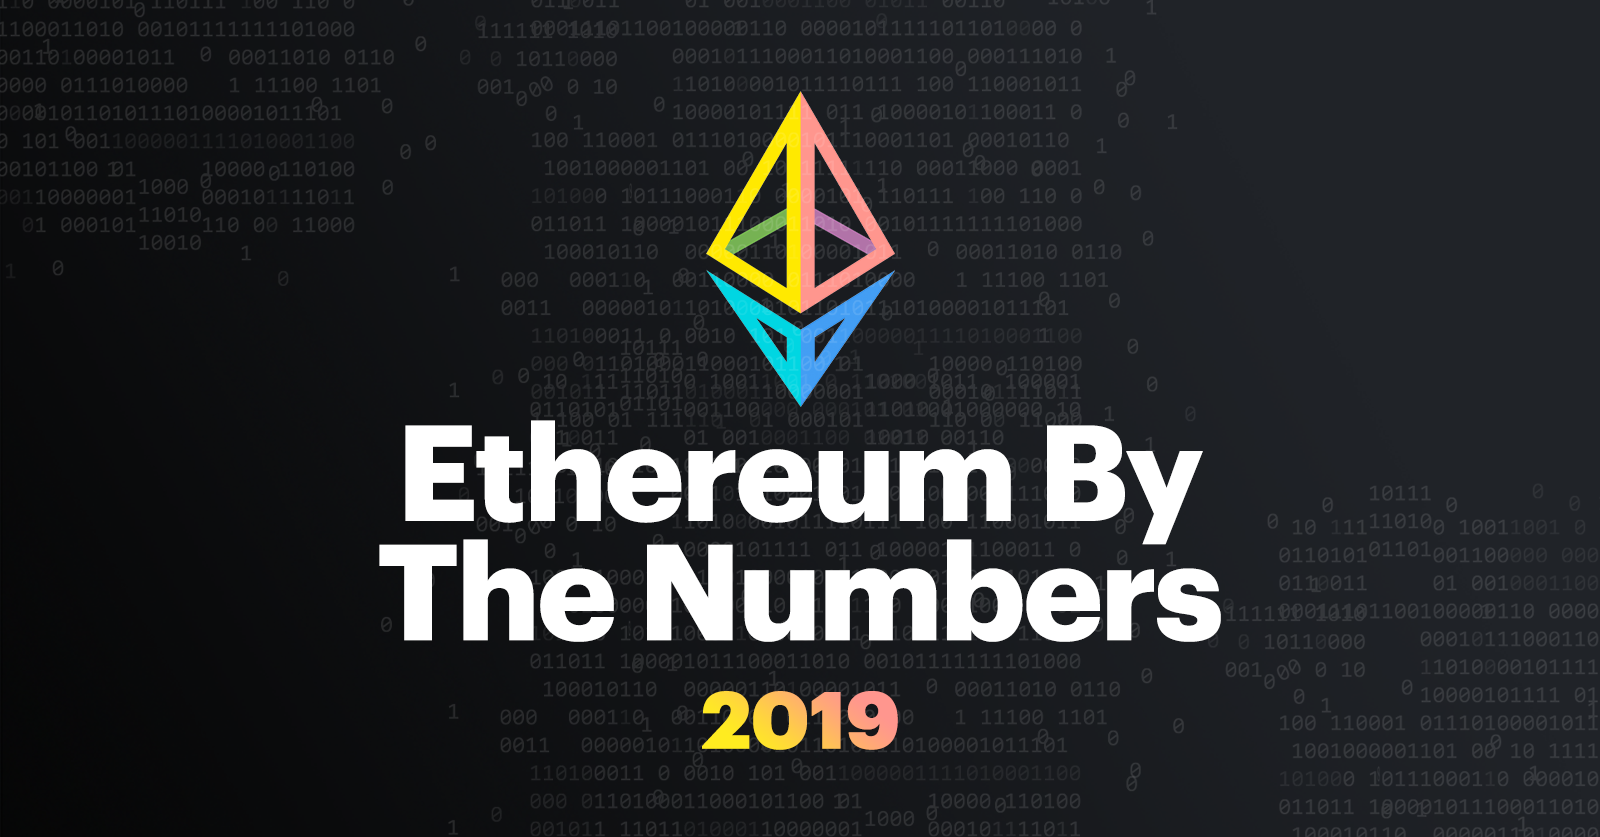 ethereum by the numbers 2019 featured